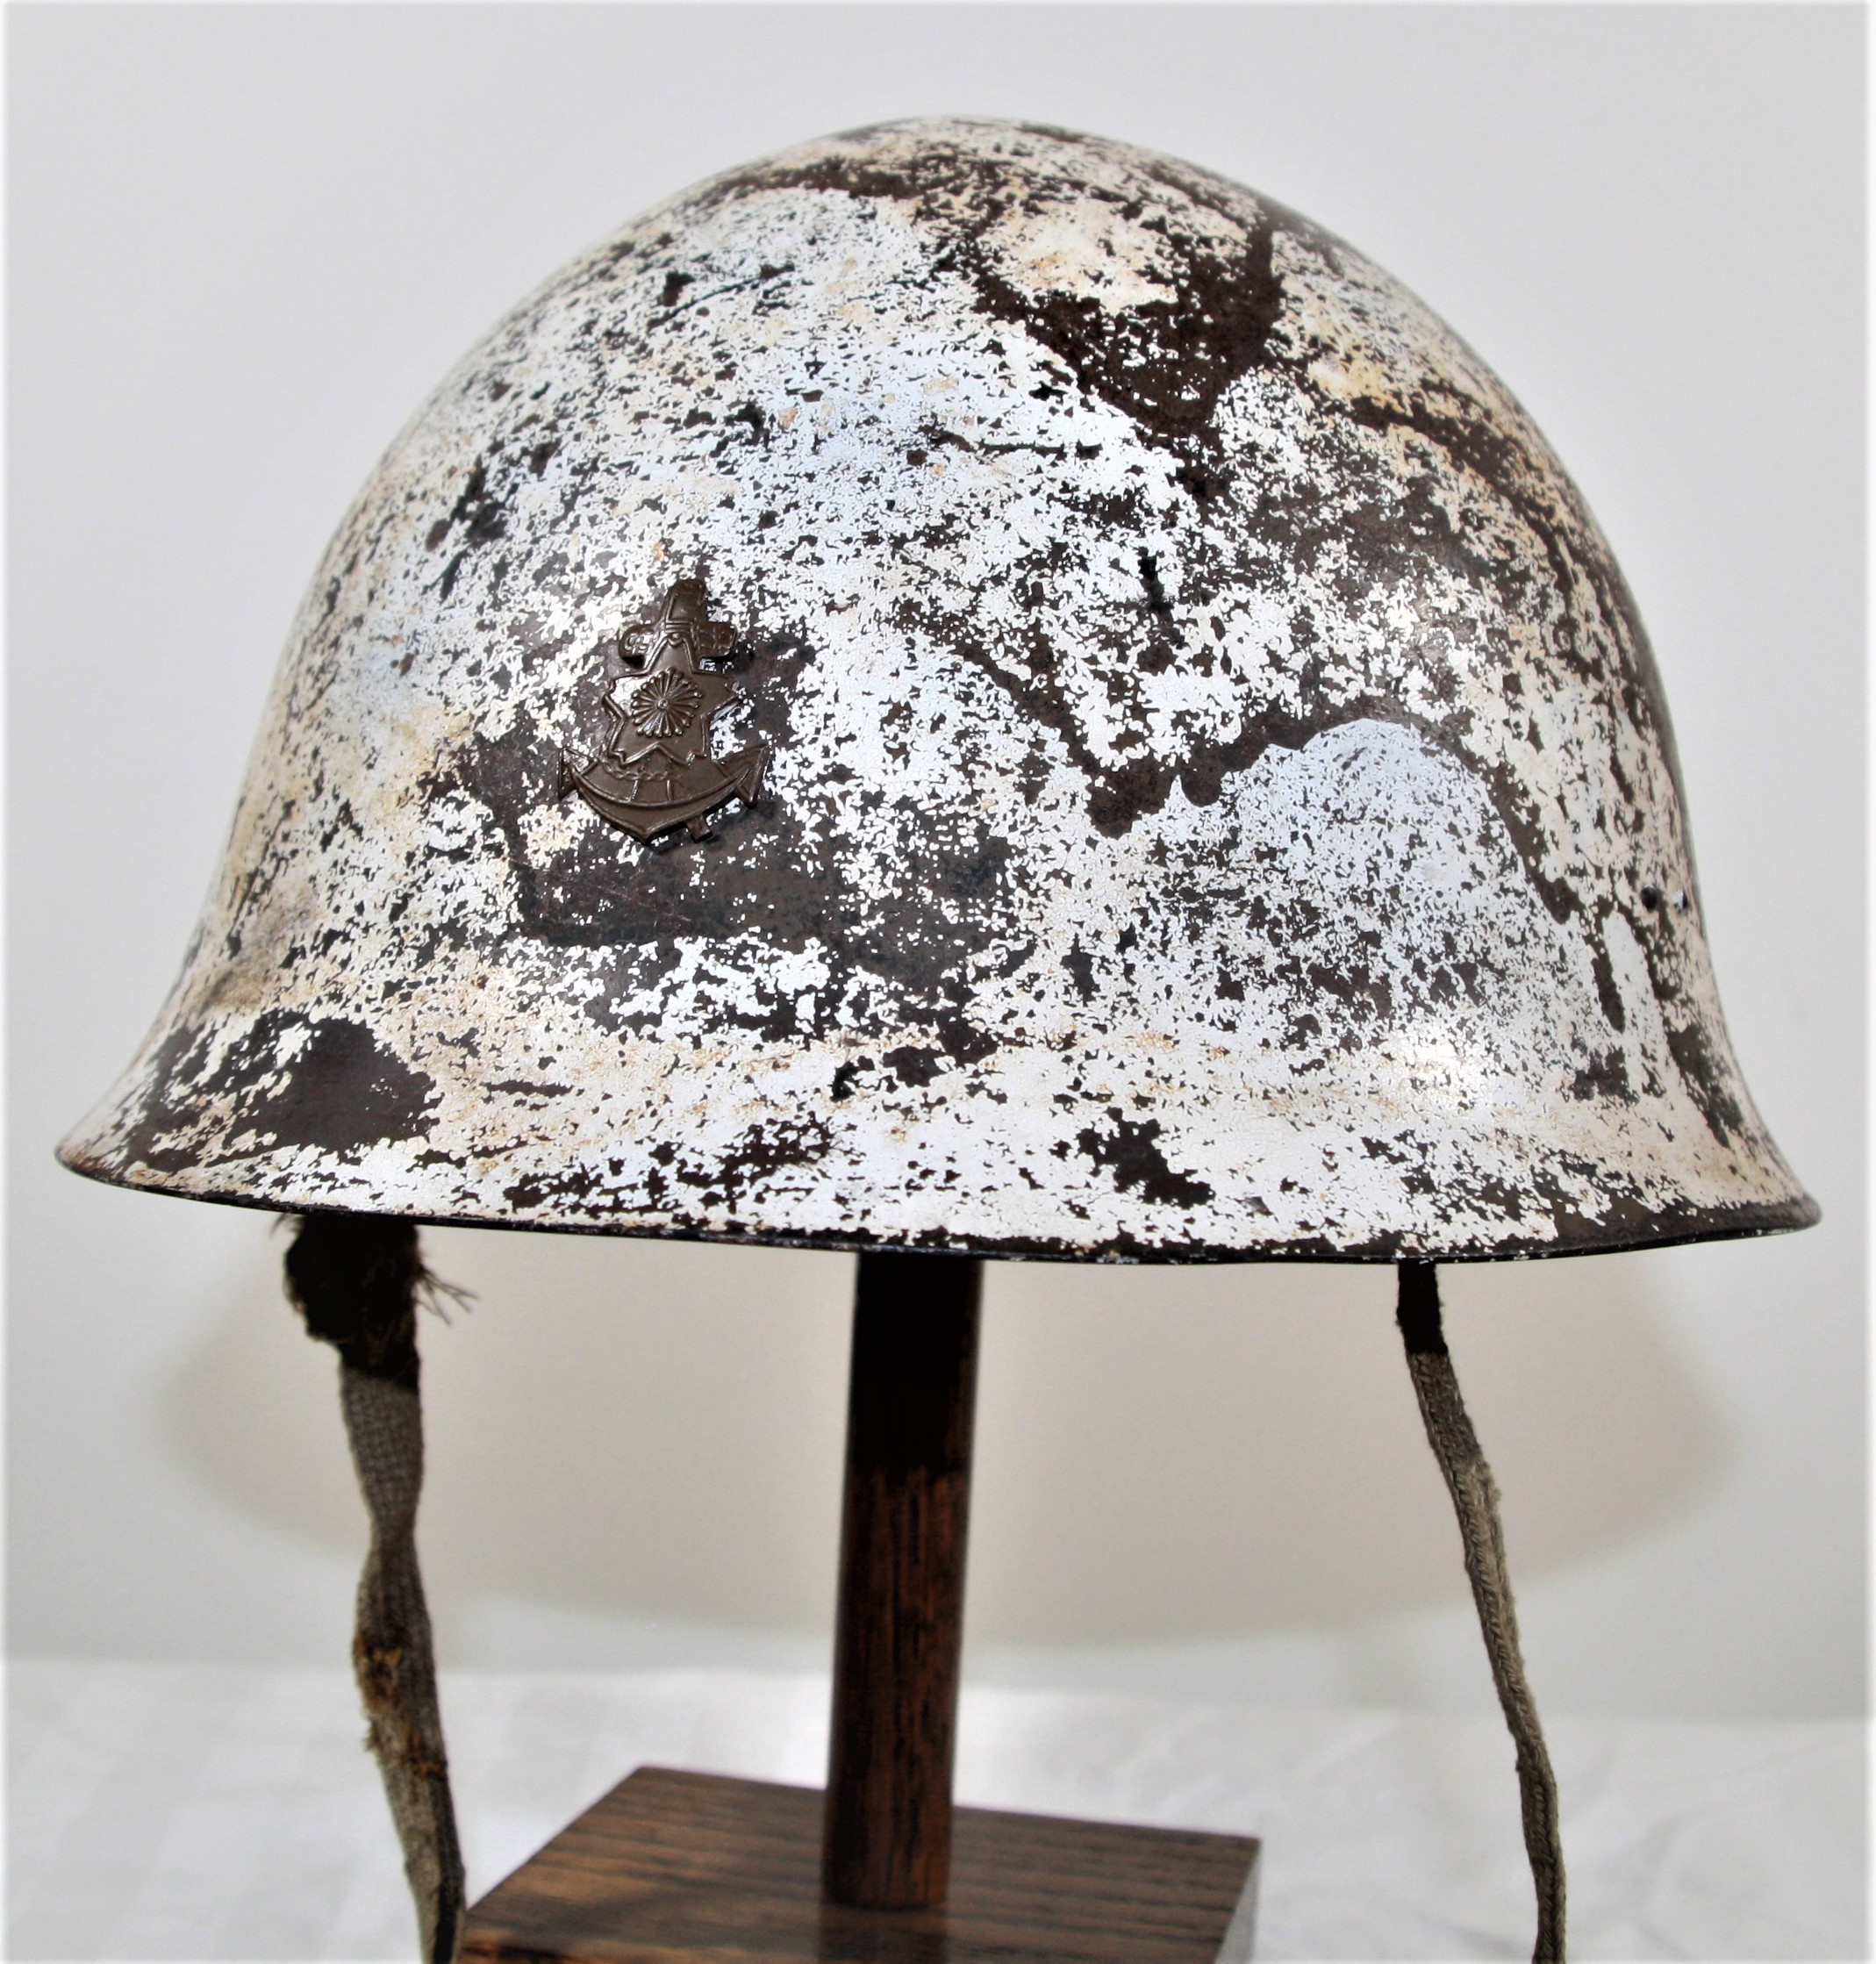 WWII Military Gears Sale JAPANESE WW2 Iron Steel Type 90 HELMET With Net Cover